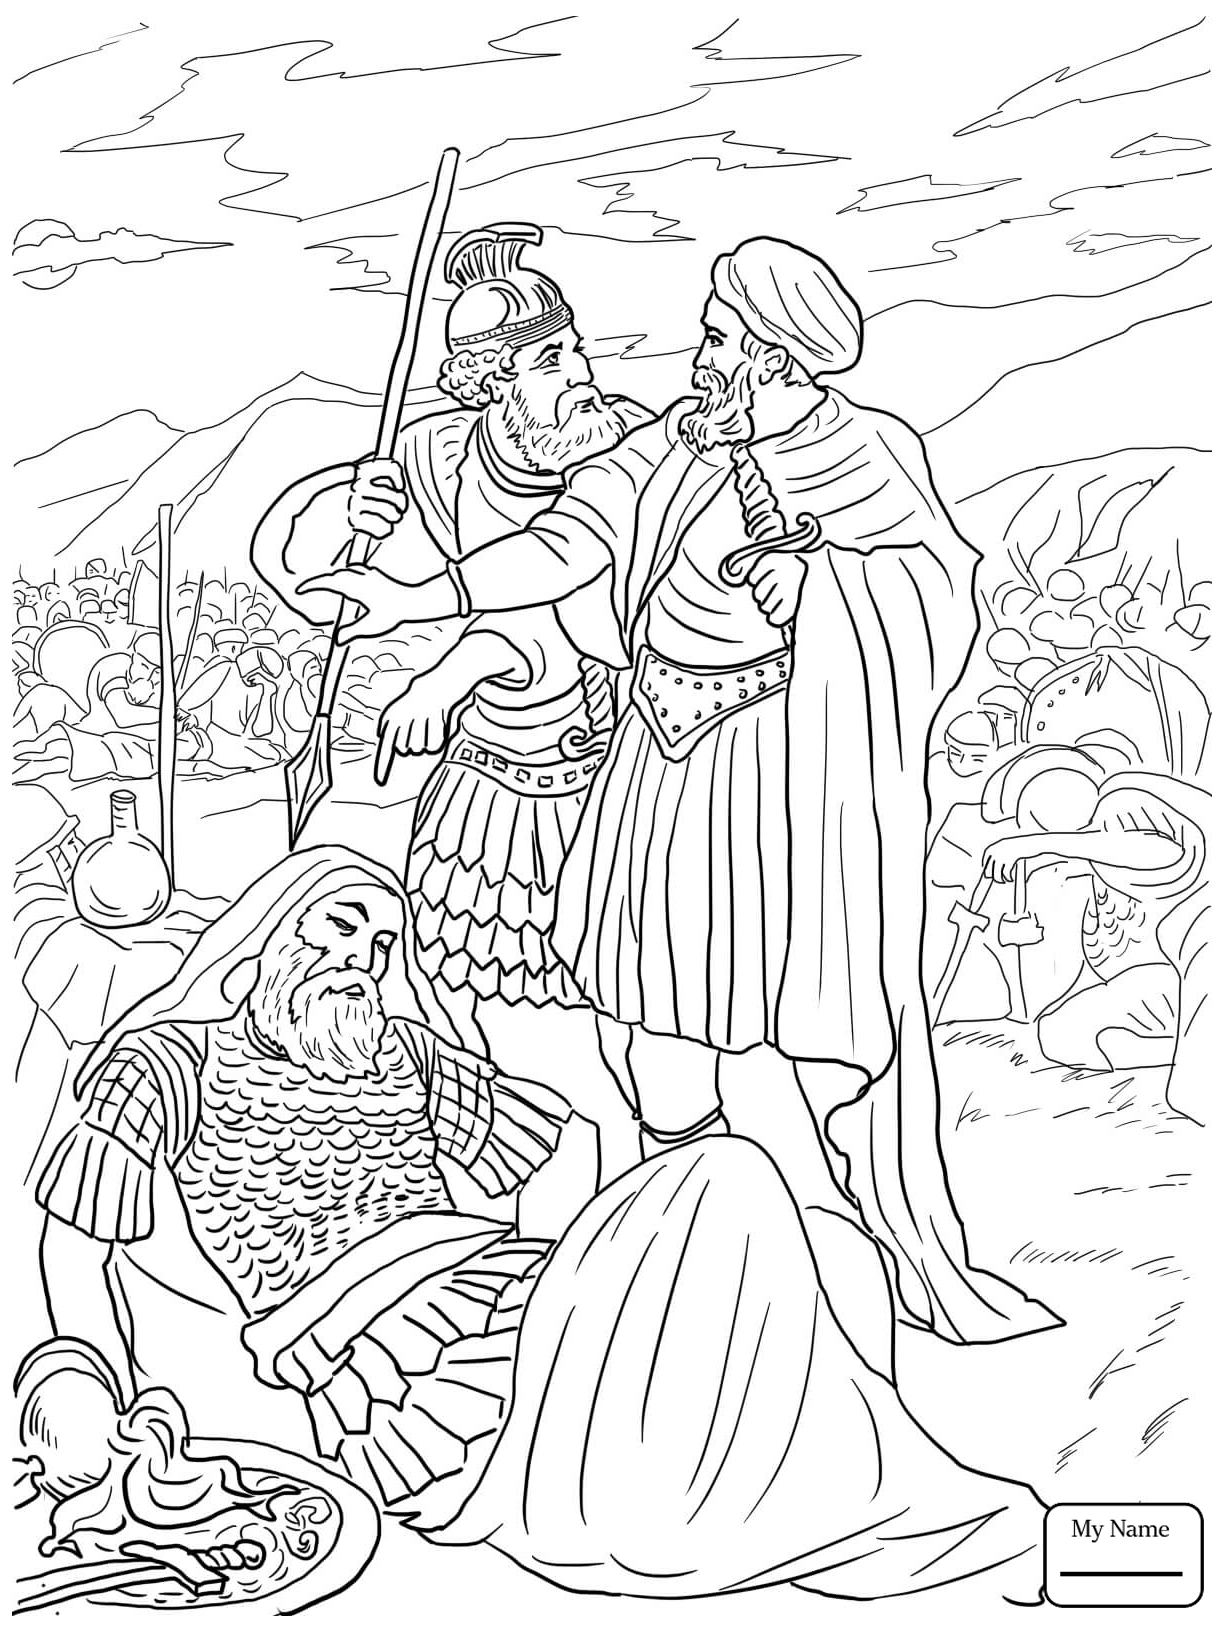 ark of the covenant coloring page kidco labs resources downloads coloring sheets the ark of page coloring covenant